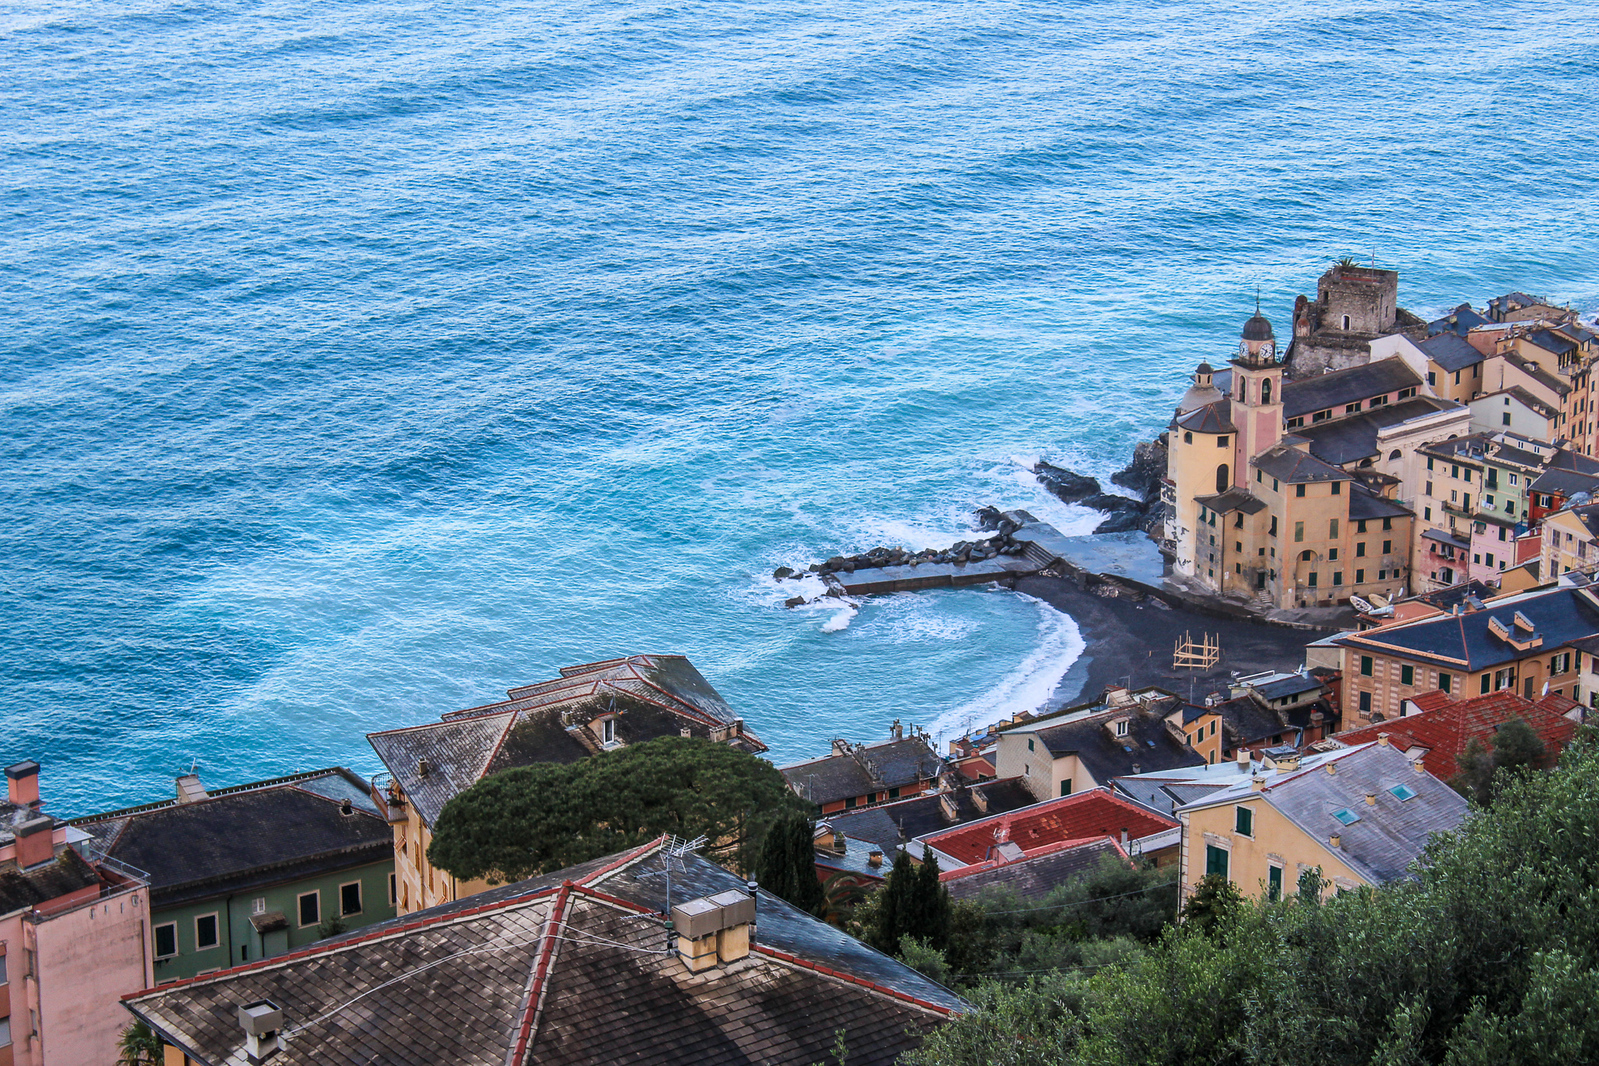 camogli things to do one of the best is to go hiking